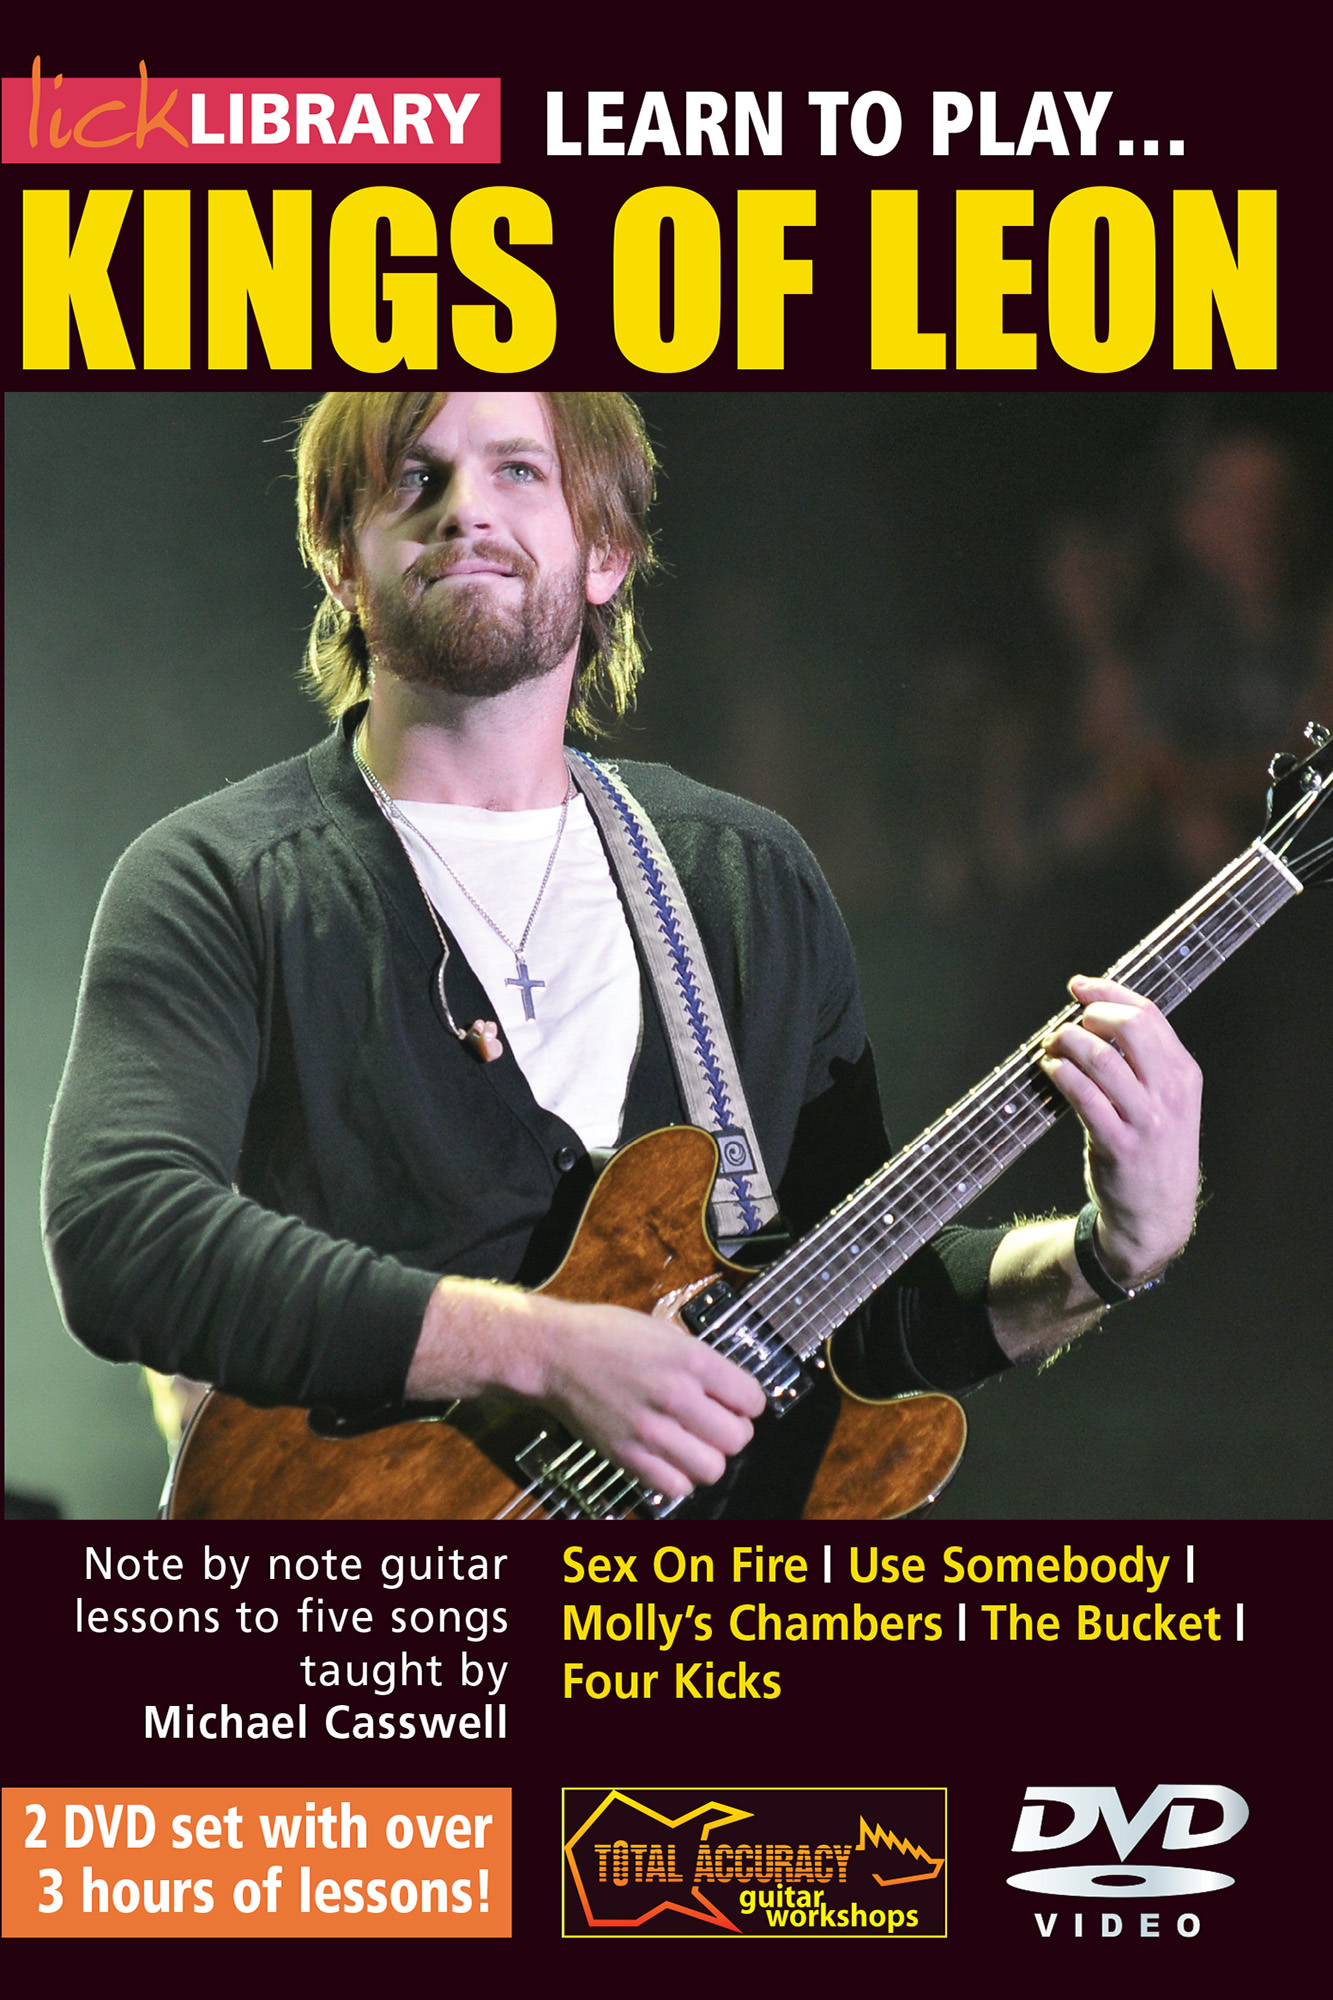 Learn To Play Kings of Leon